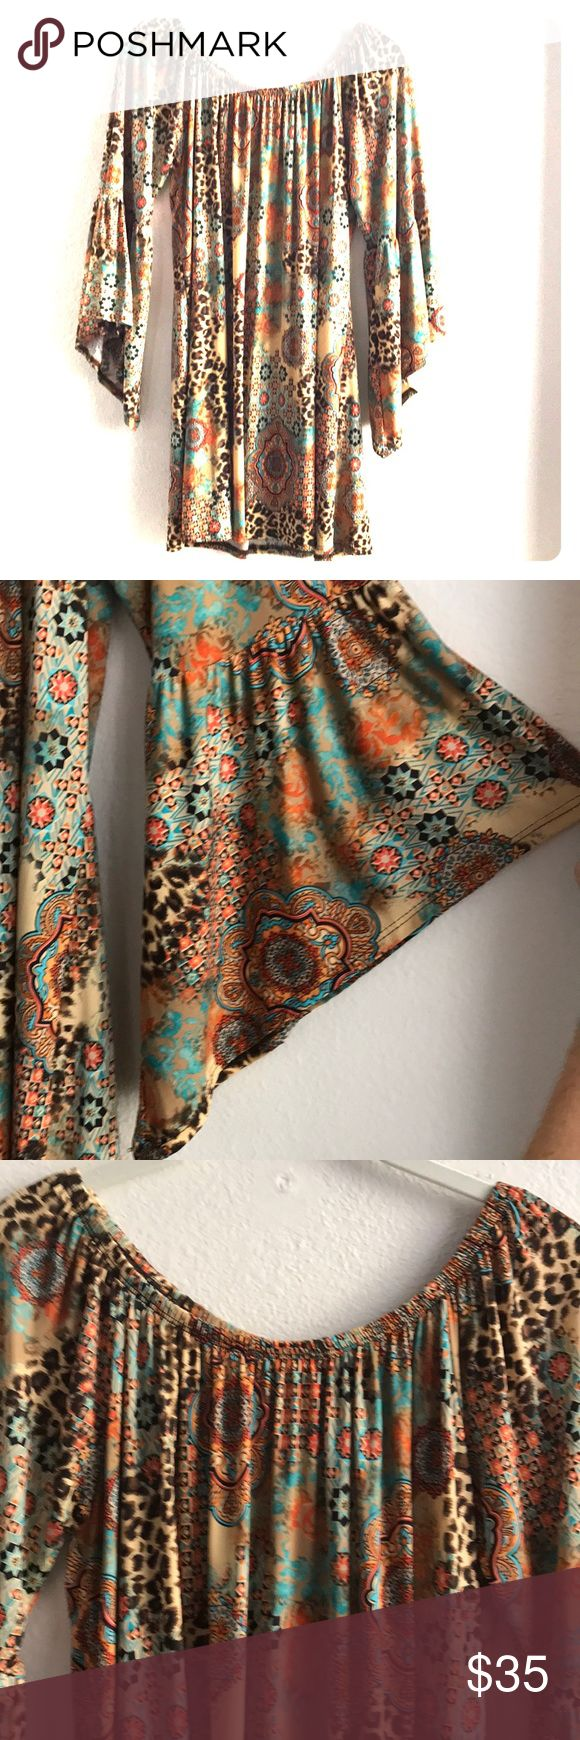 """Festival Dress Bell sleeve boho dress perfect for festivals! Turquoise, brown and orange design by Yahada in a size medium. Made of 92% polyester and 8% spandex. Hand or machine wash cold water. Measures 30"""" shoulder to hem. Only worn once! Yahada Dresses Midi"""